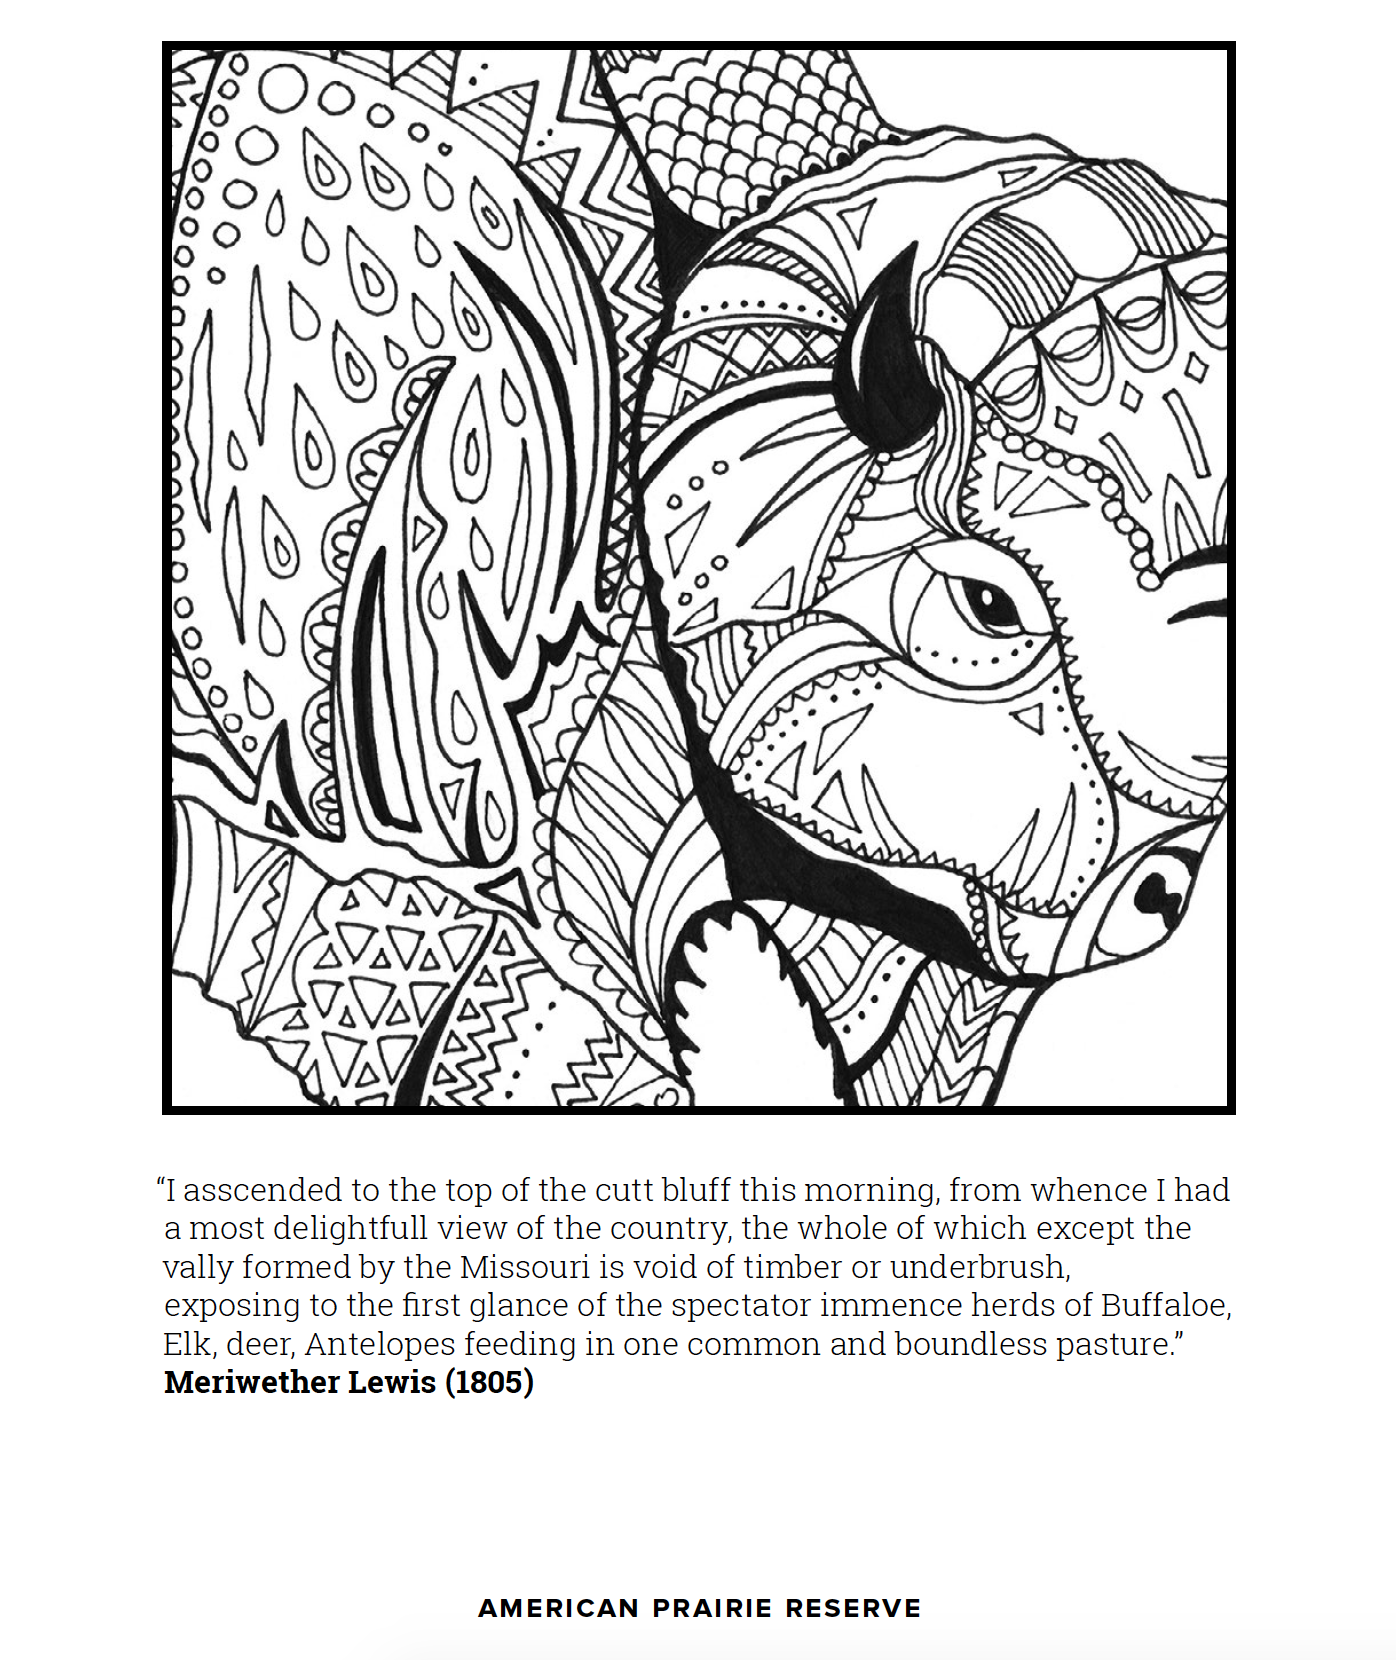 Free Buffalo Coloring Page To Download And Print At Home Or